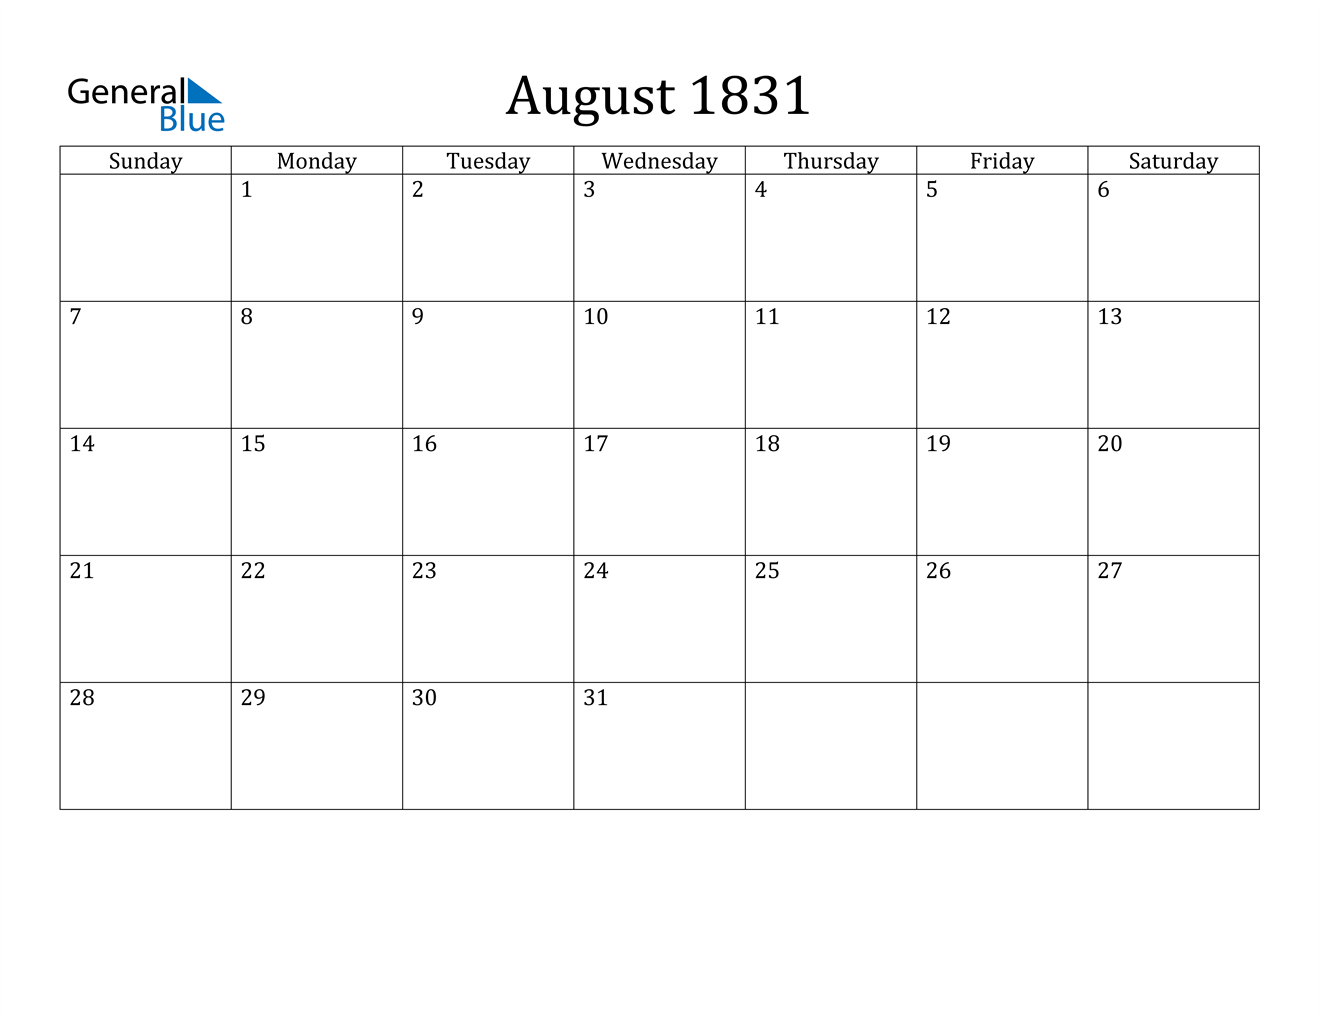 Image of August 1831 Calendar